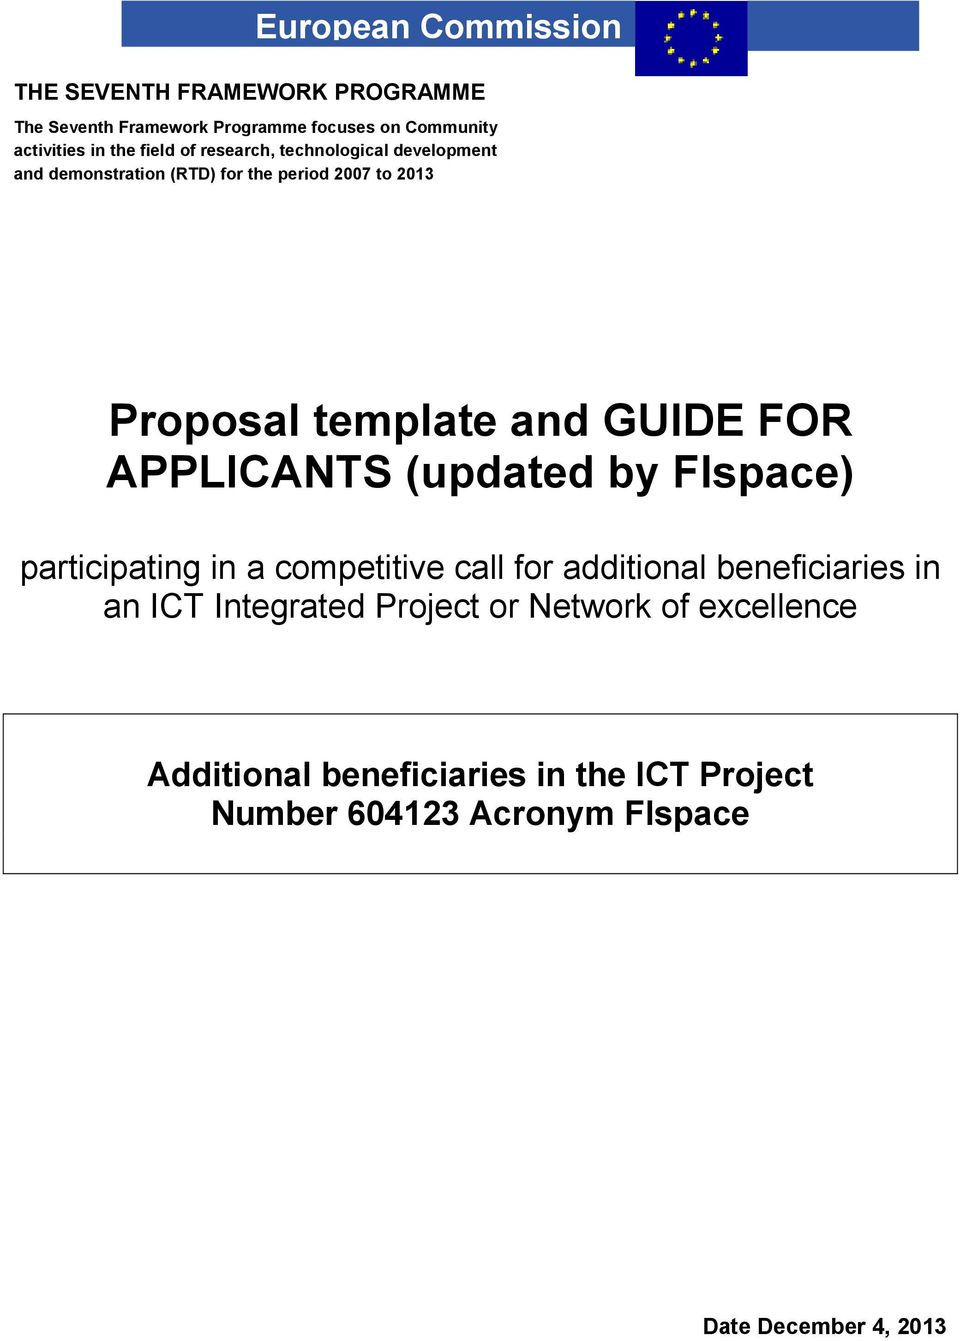 FOR APPLICANTS (updated by FIspace) participating in a competitive call for additional beneficiaries in an ICT Integrated